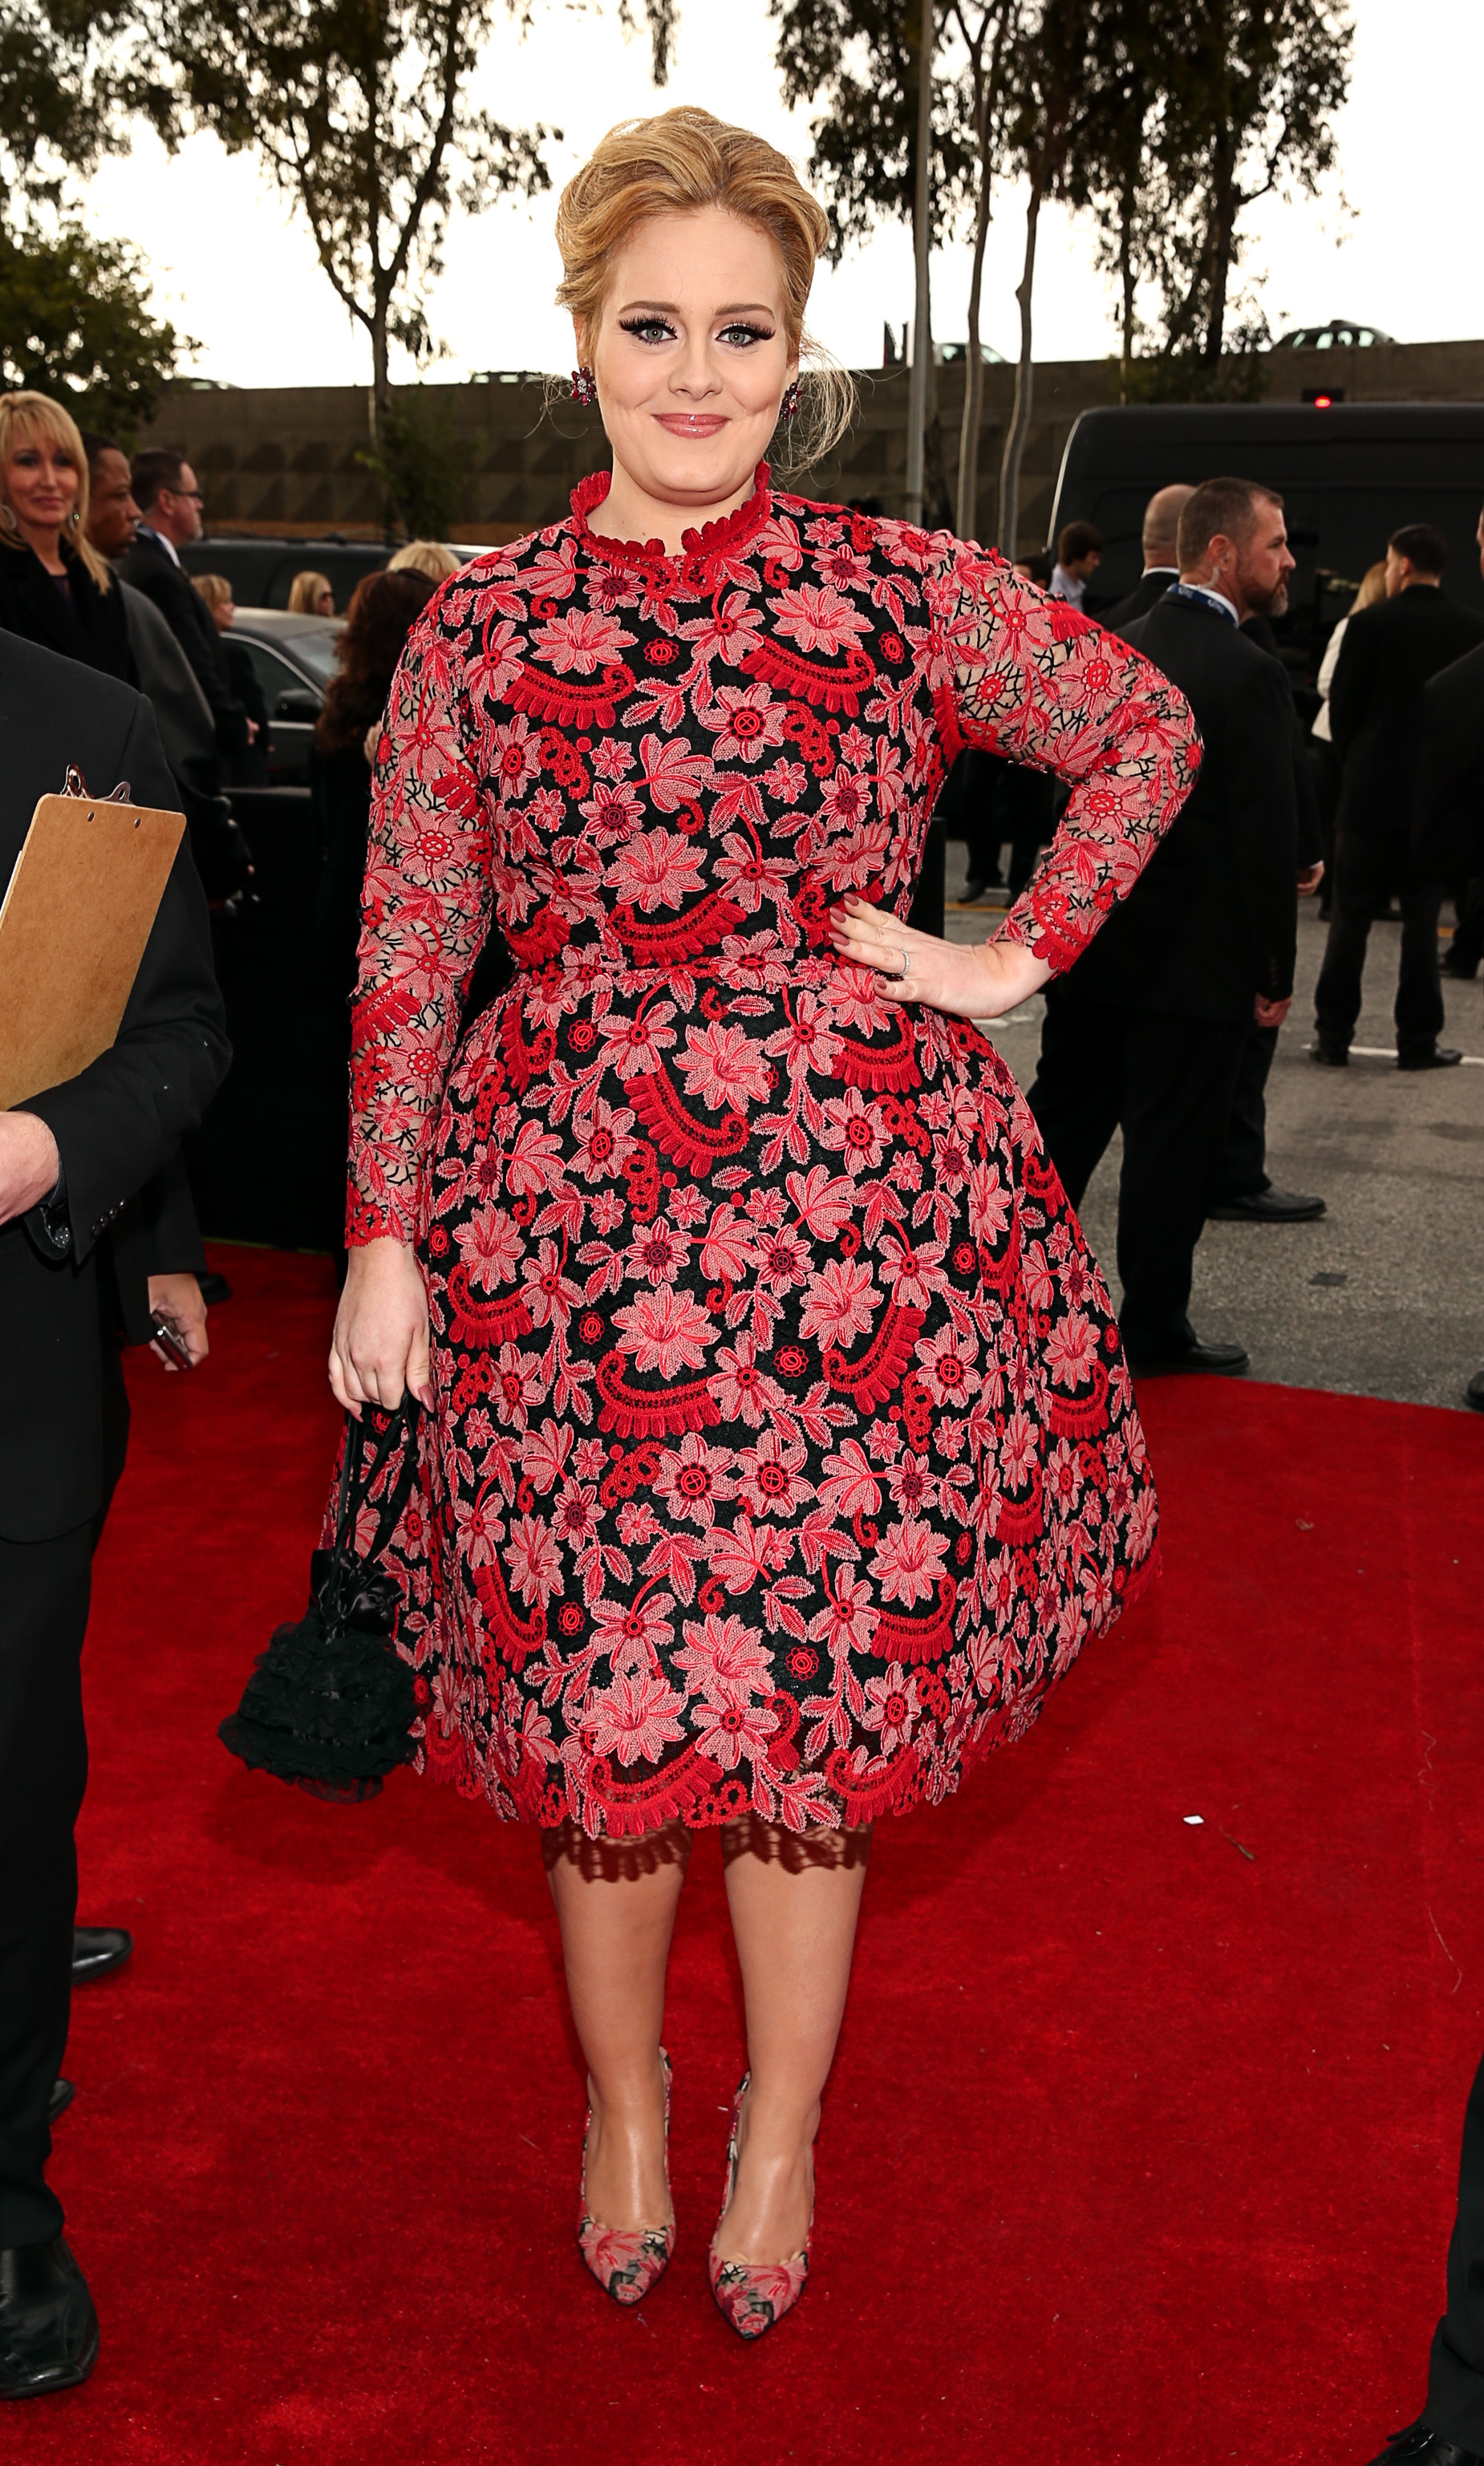 Adele wore a floral Valentino Couture gown for the Grammys red carpet.